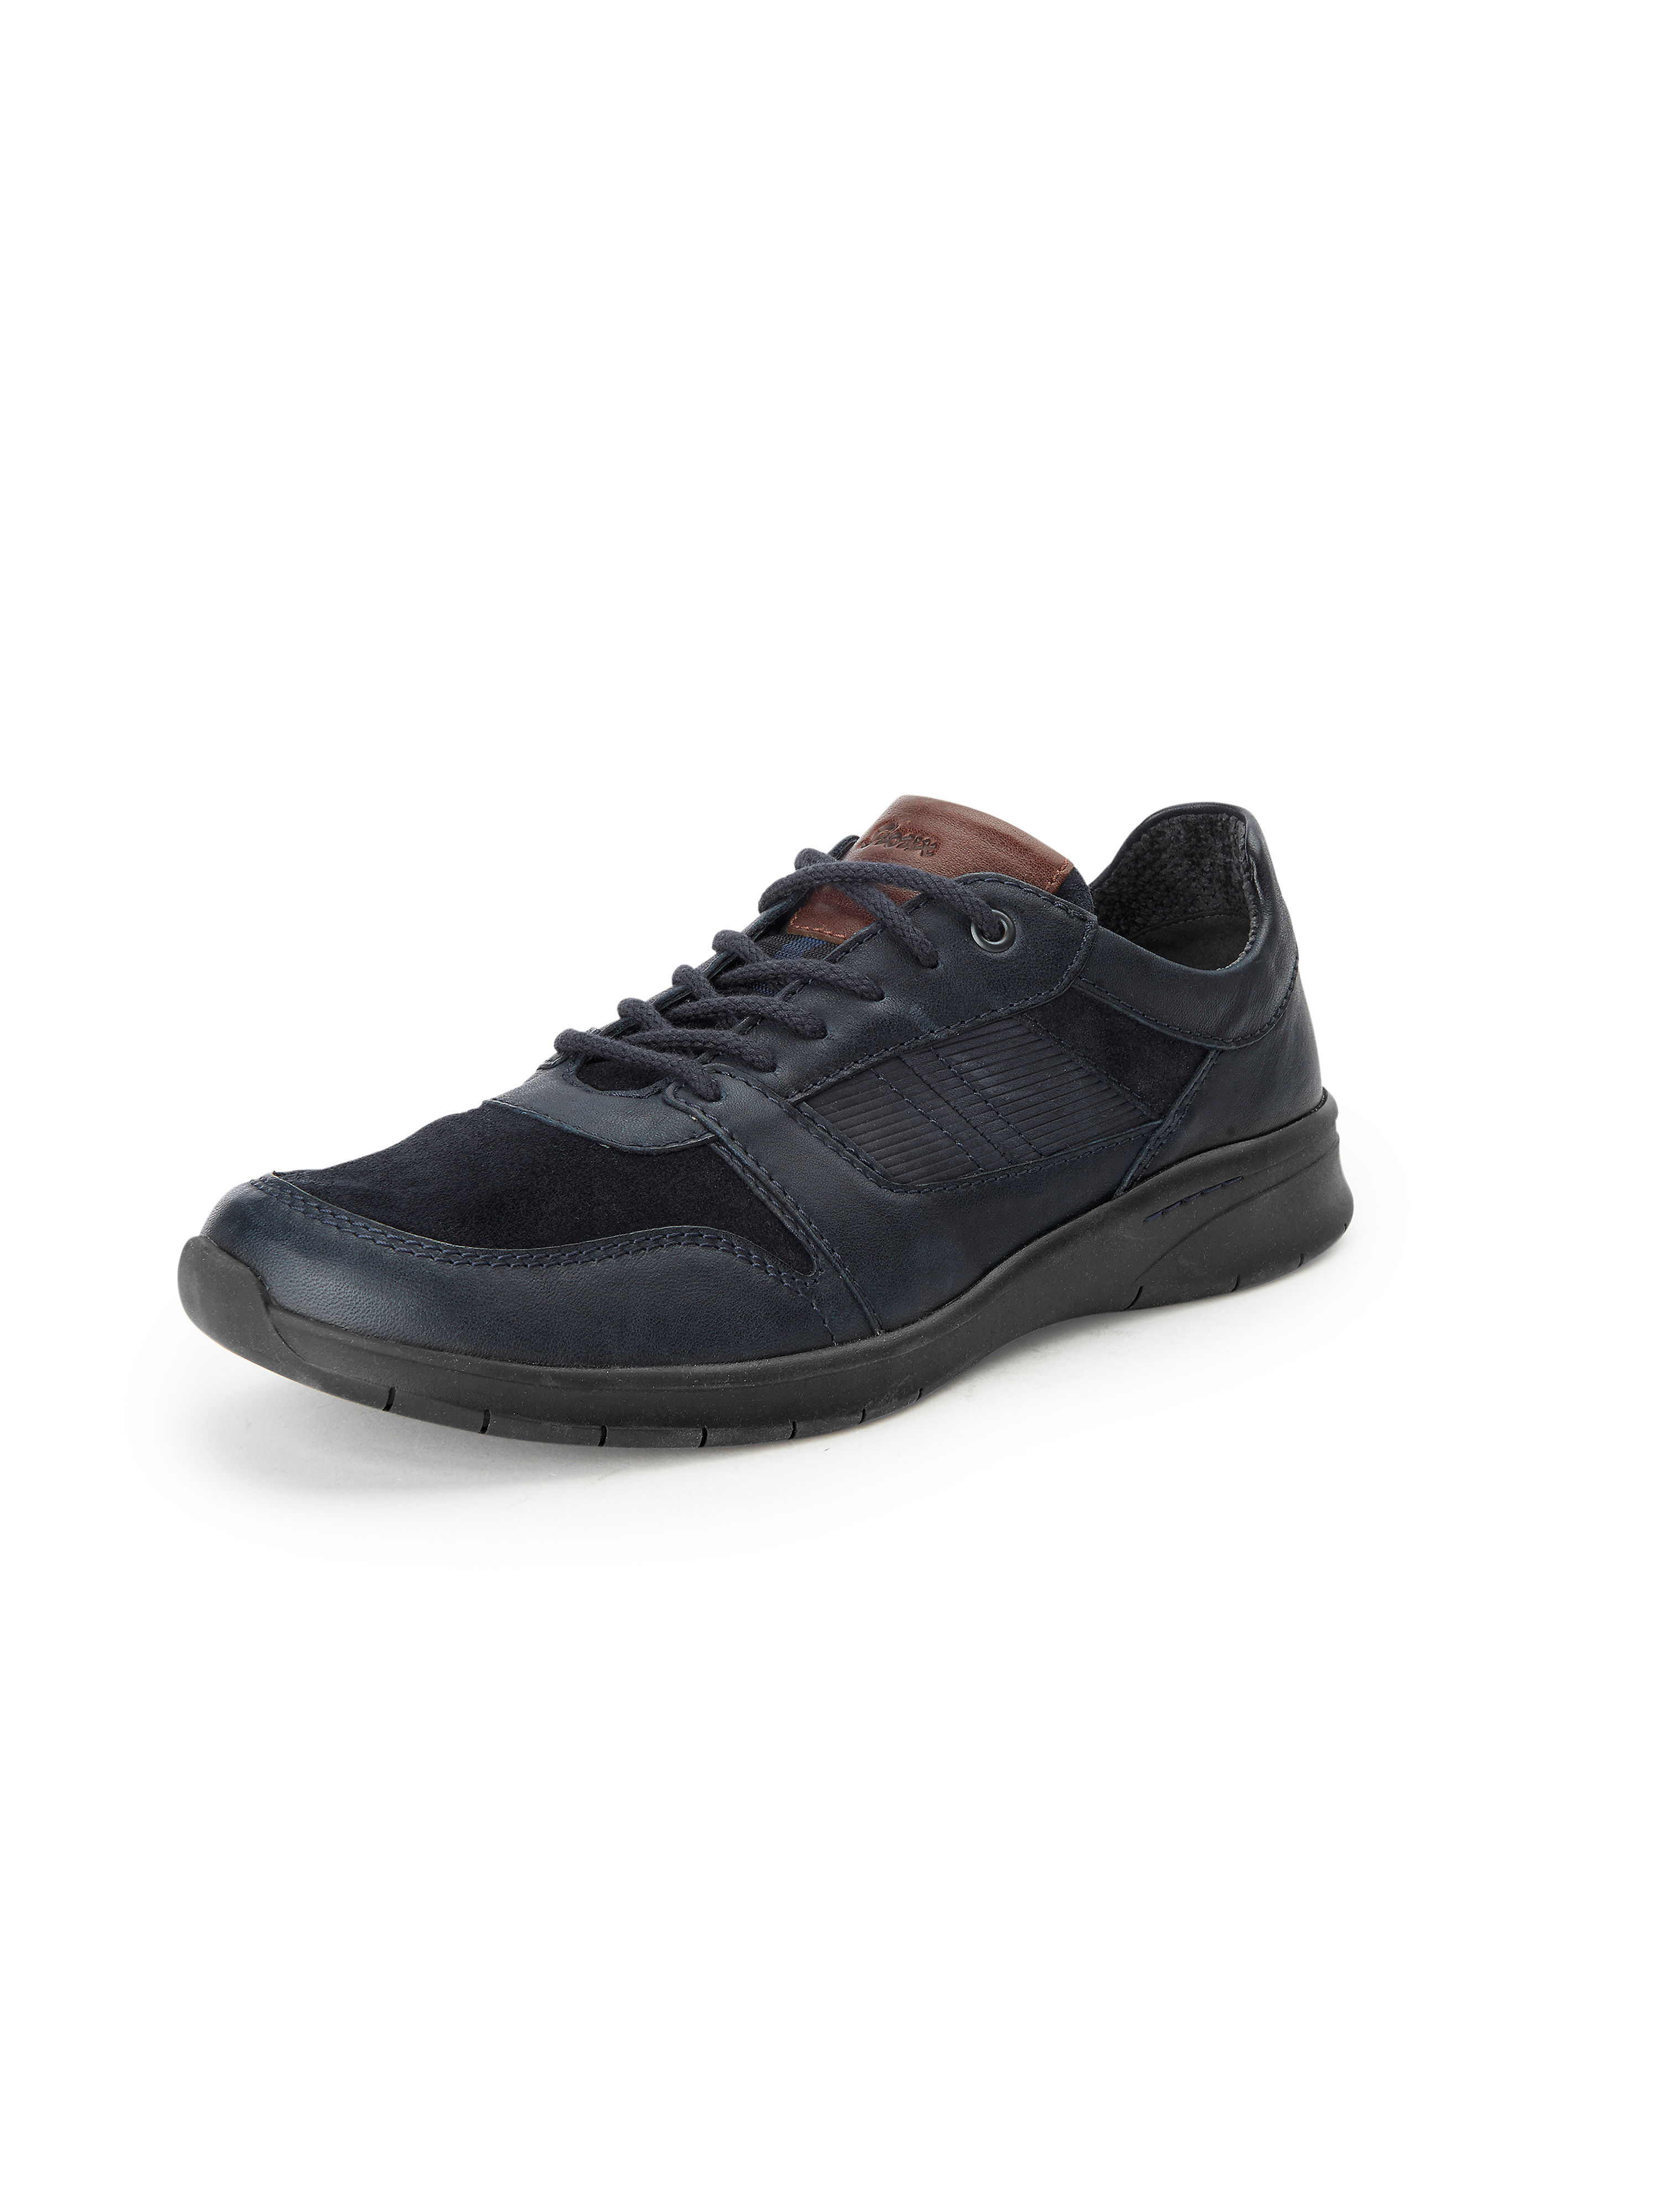 Les sneakers Heimito cuir nappa Sioux bleu taille 40